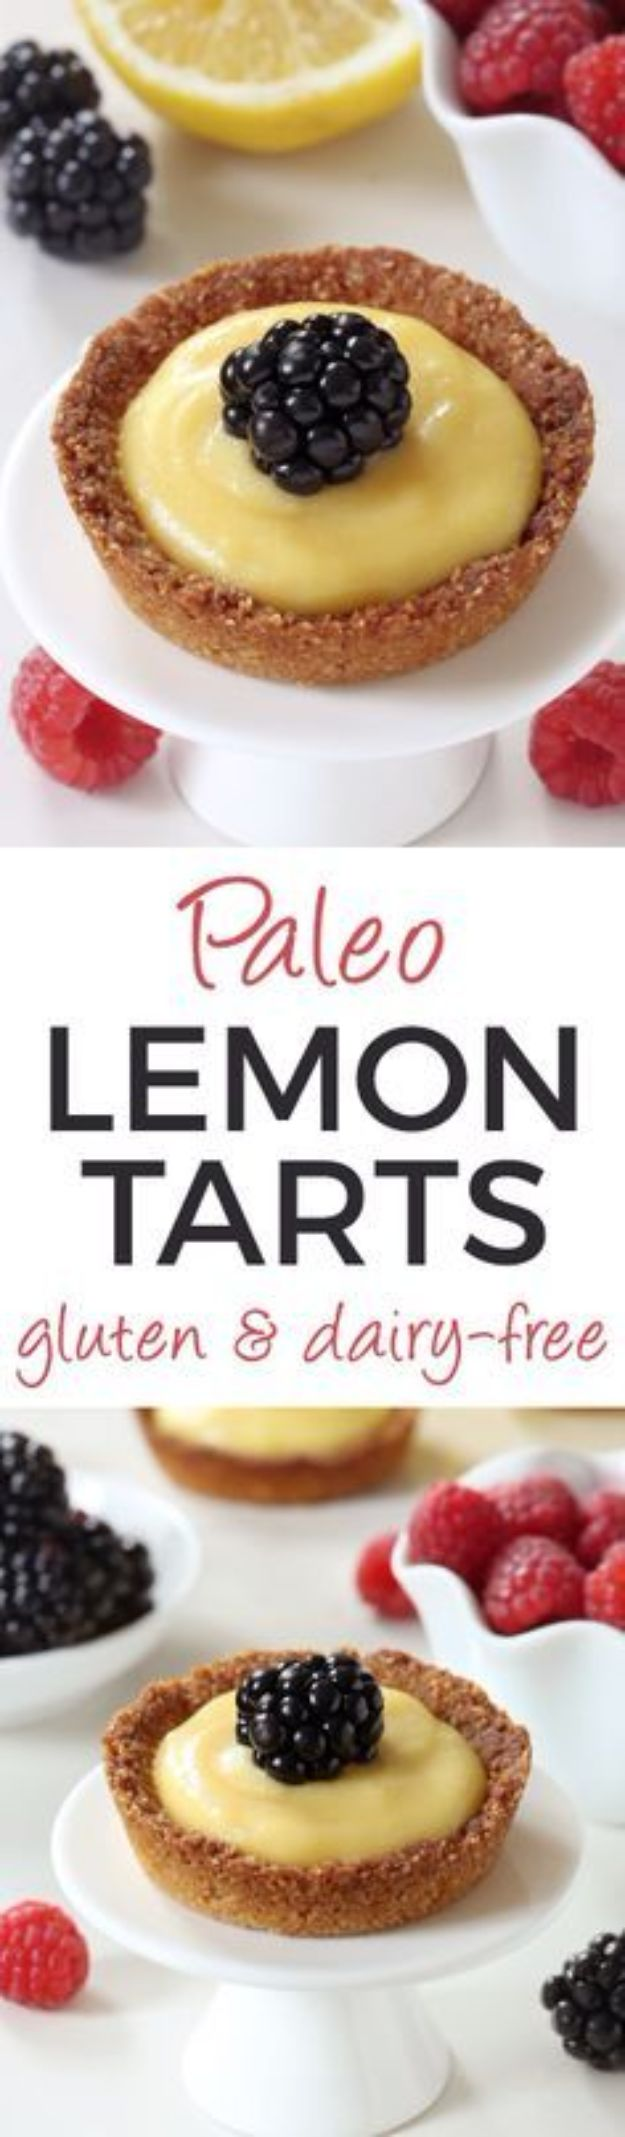 Gluten Free Desserts - Paleo Mini Lemon Tarts - Easy Recipes and Healthy Recipe Ideas for Cookies, Cake, Pie, Cupcakes, Cheesecake and Ice Cream - Best No Sugar Glutenfree Chocolate, No Bake Dessert, Fruit, Peach, Apple and Banana Dishes - Flourless Christmas, Thanksgiving and Holiday Dishes #glutenfree #desserts #recipes